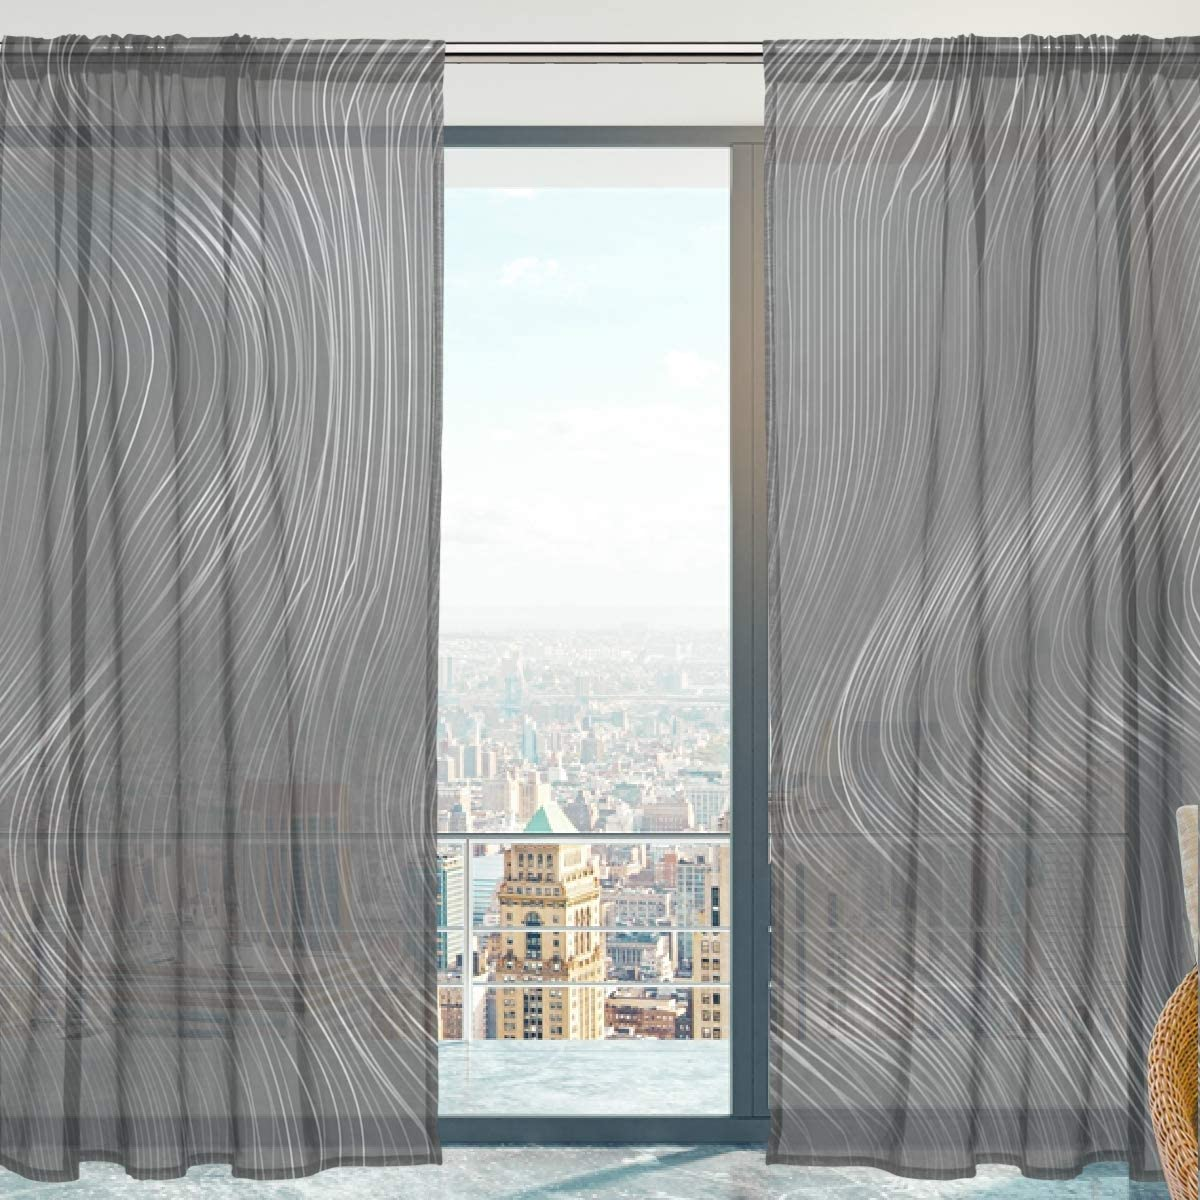 senya SAVSV Sheer Window Curtain Panels Long Voile Drapes Fashion Morden Gray Abstract Design 55 W x 78 L Set of 2 for Living Room Bedroom Kitchen Window